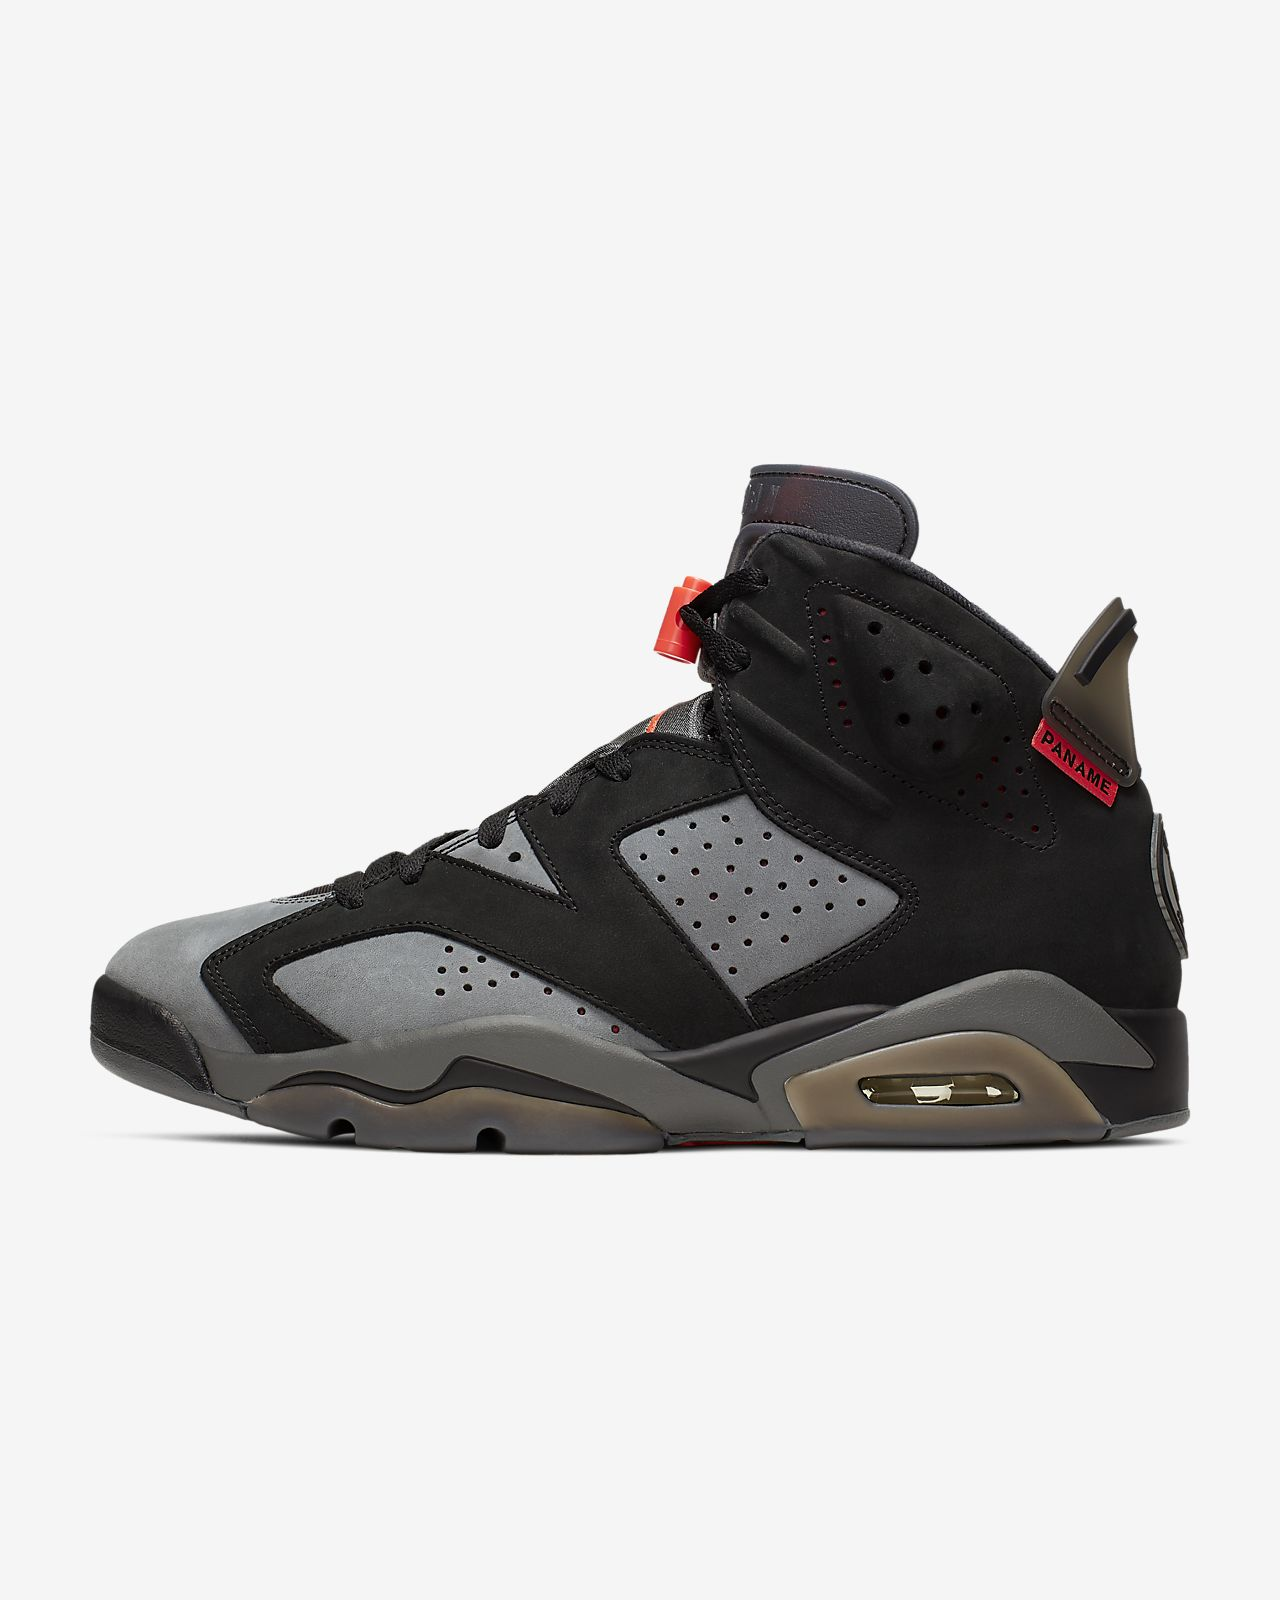 Air Jordan 6 Retro Paris Saint-Germain Men's Shoe